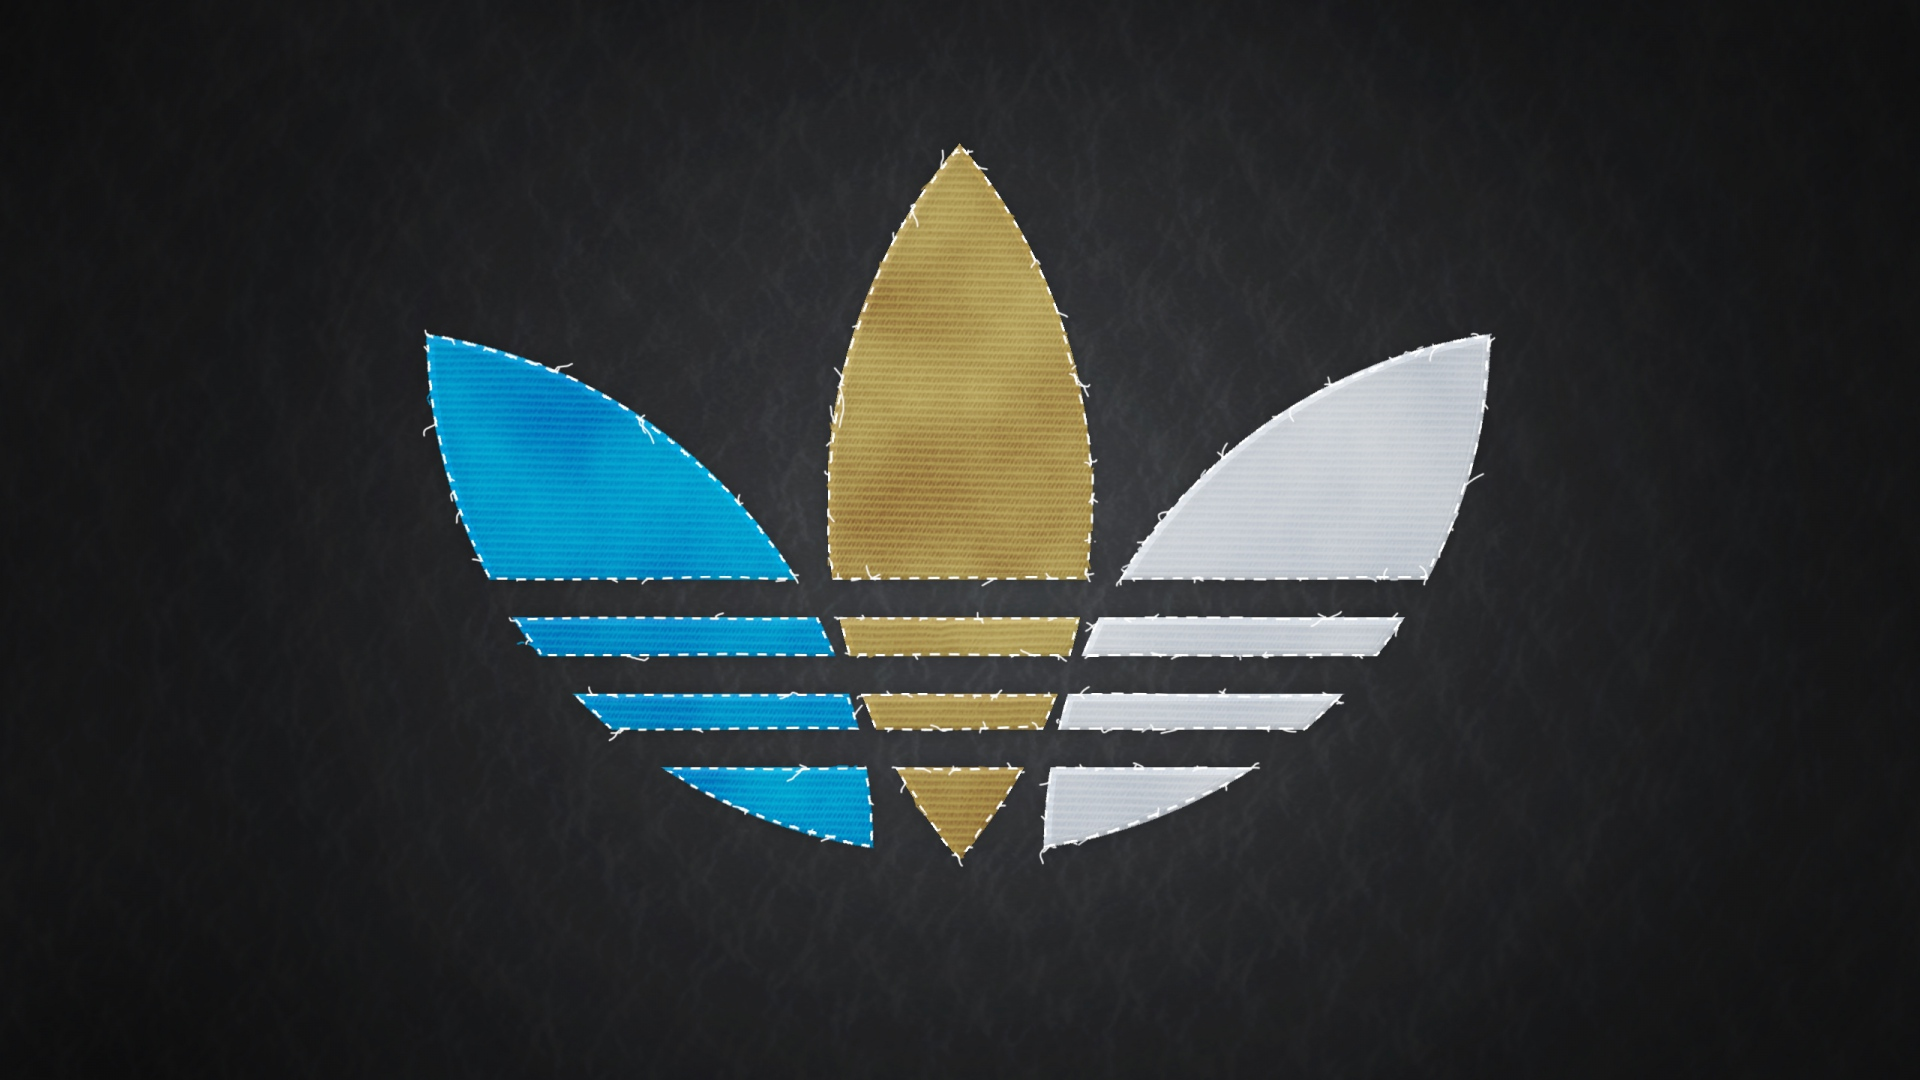 Download Wallpaper 1920x1080 adidas logo originals Full HD 1080p HD 1920x1080